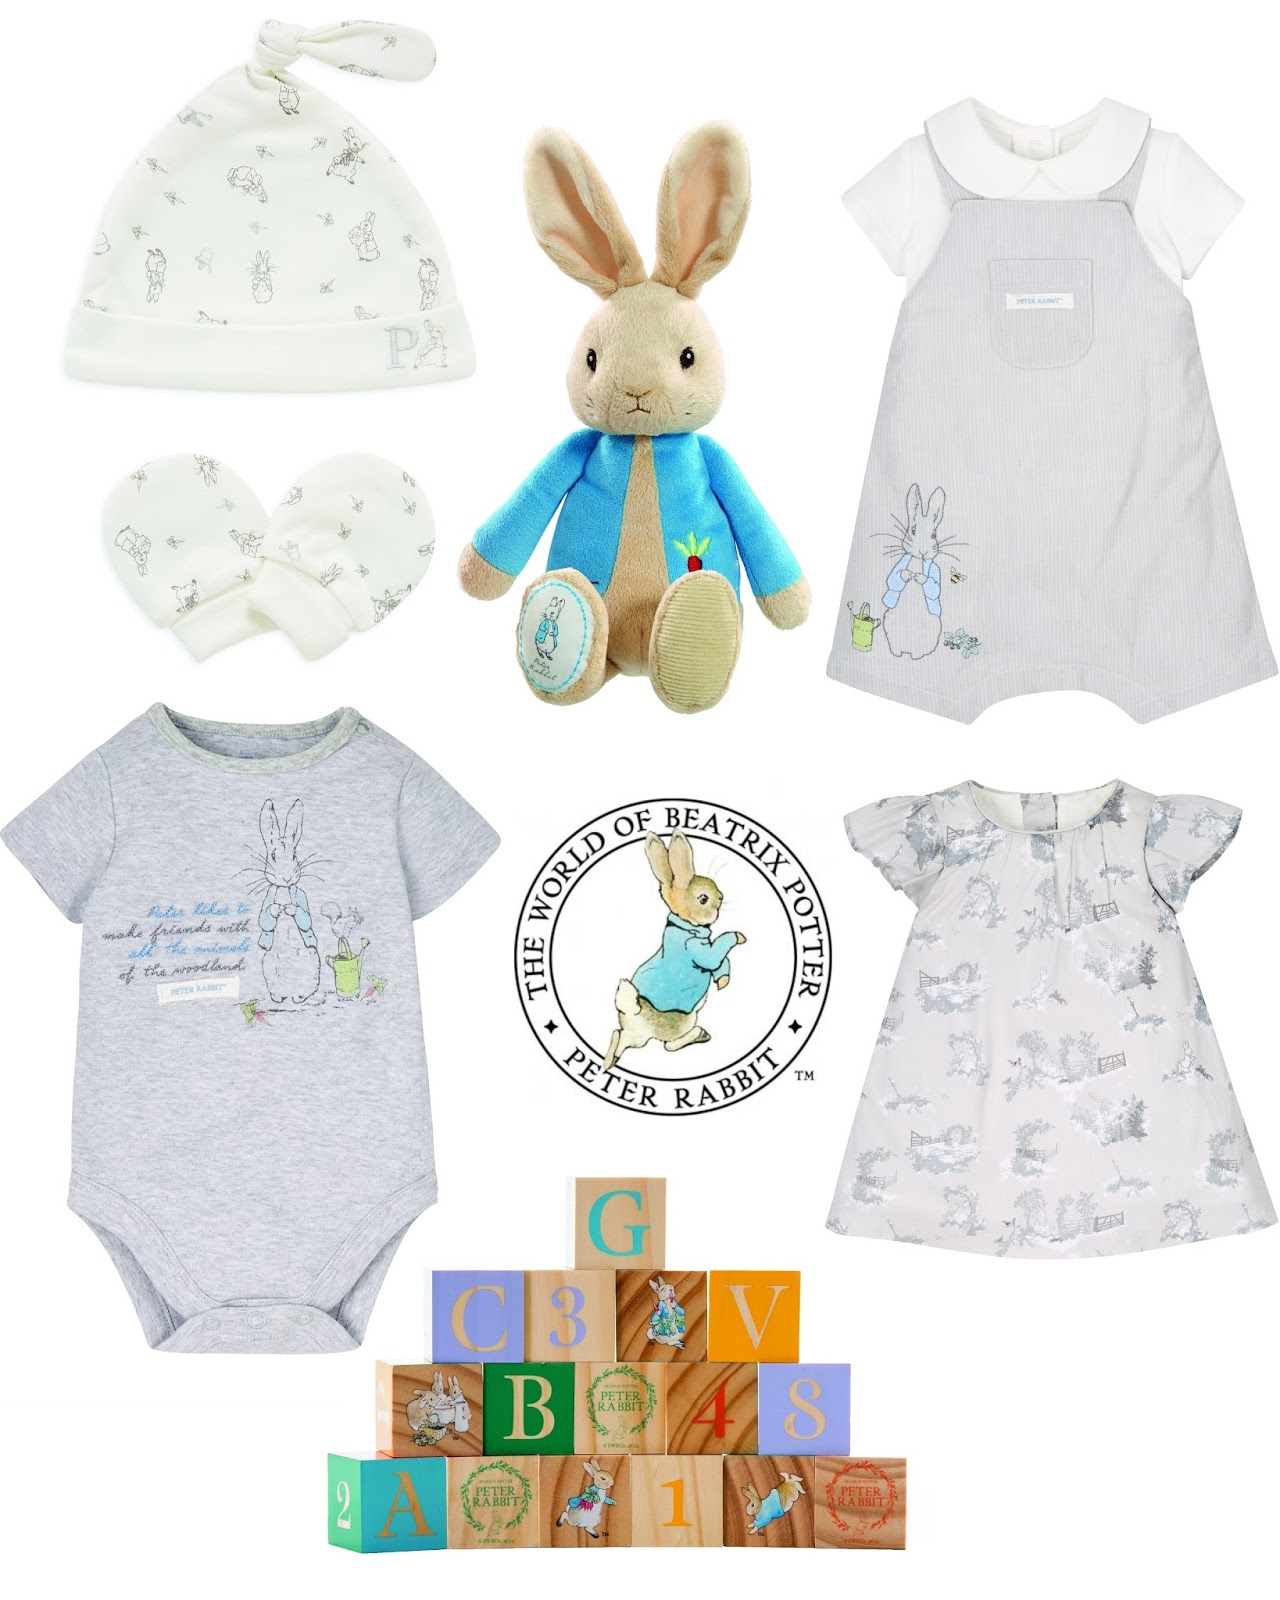 92916c9dc V. I. BUYS: Fashion Finder - the exclusive kids collection coming soon that  you won' ...